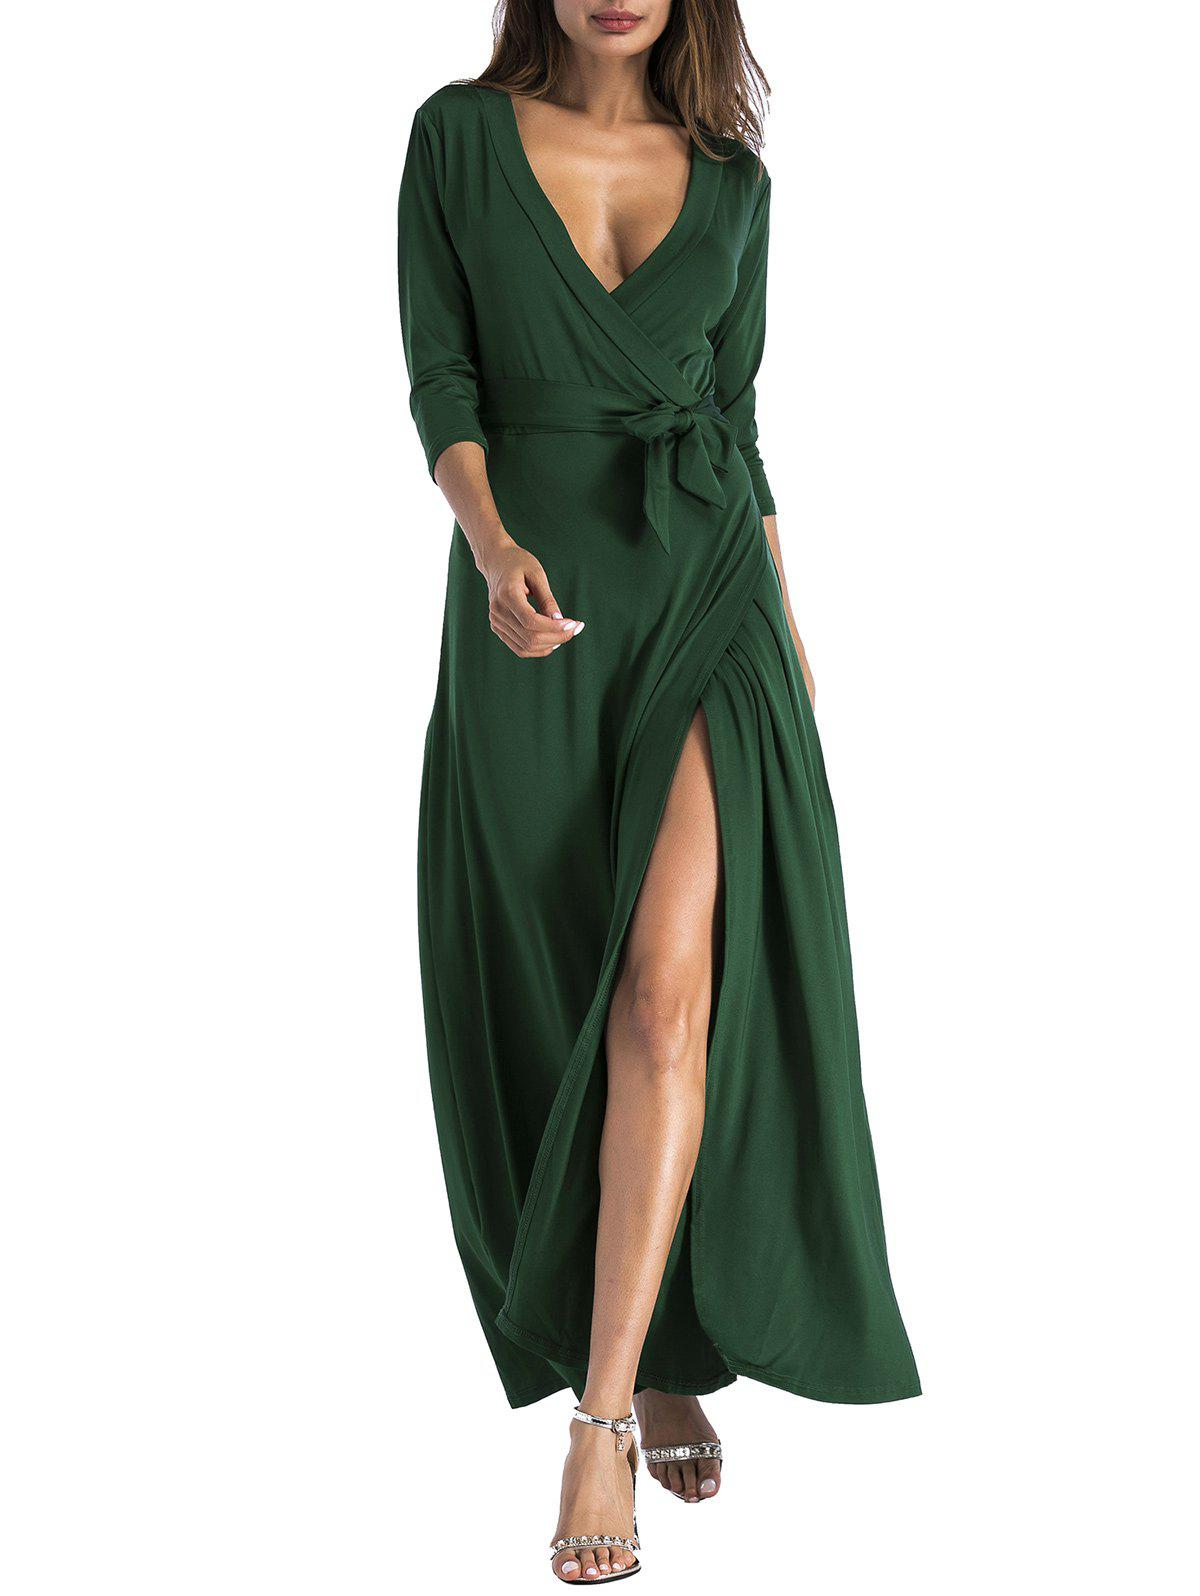 Shop Plunging Belted Surplice High Slit Maxi Dress